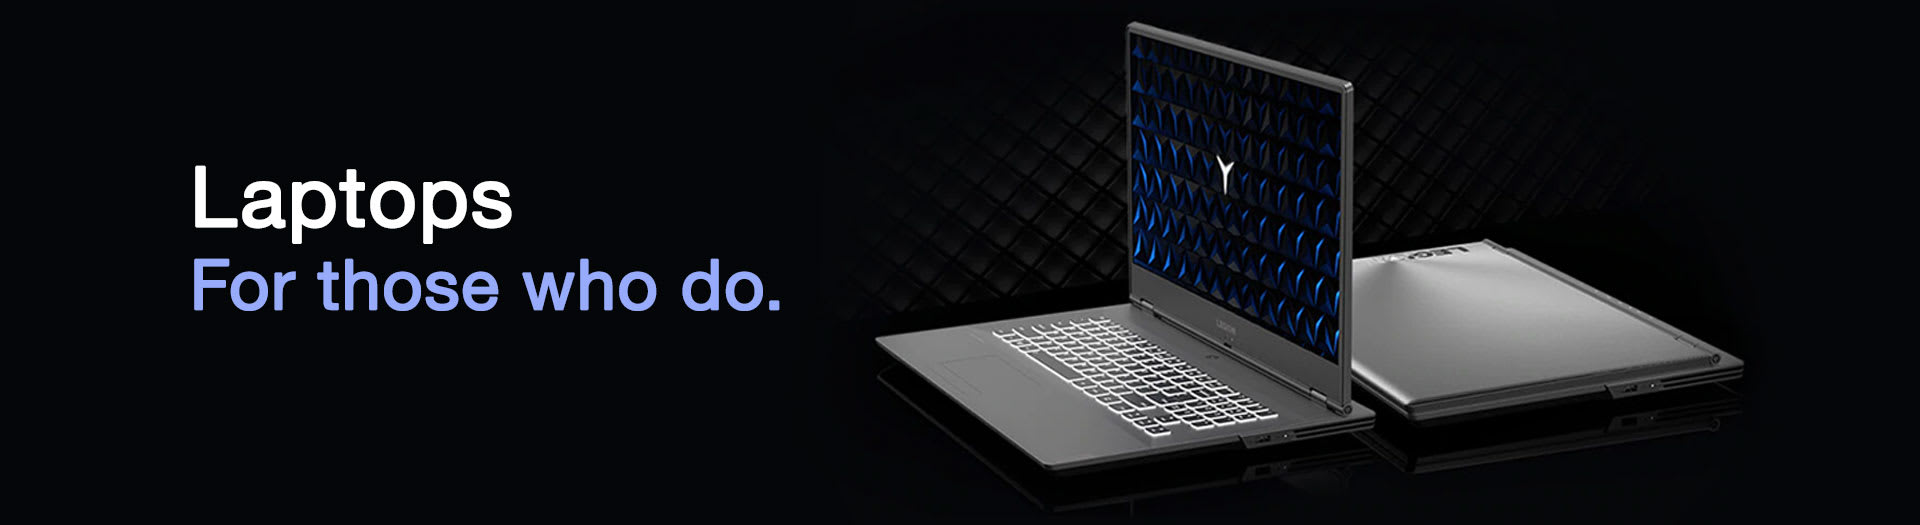 Laptops For those who do